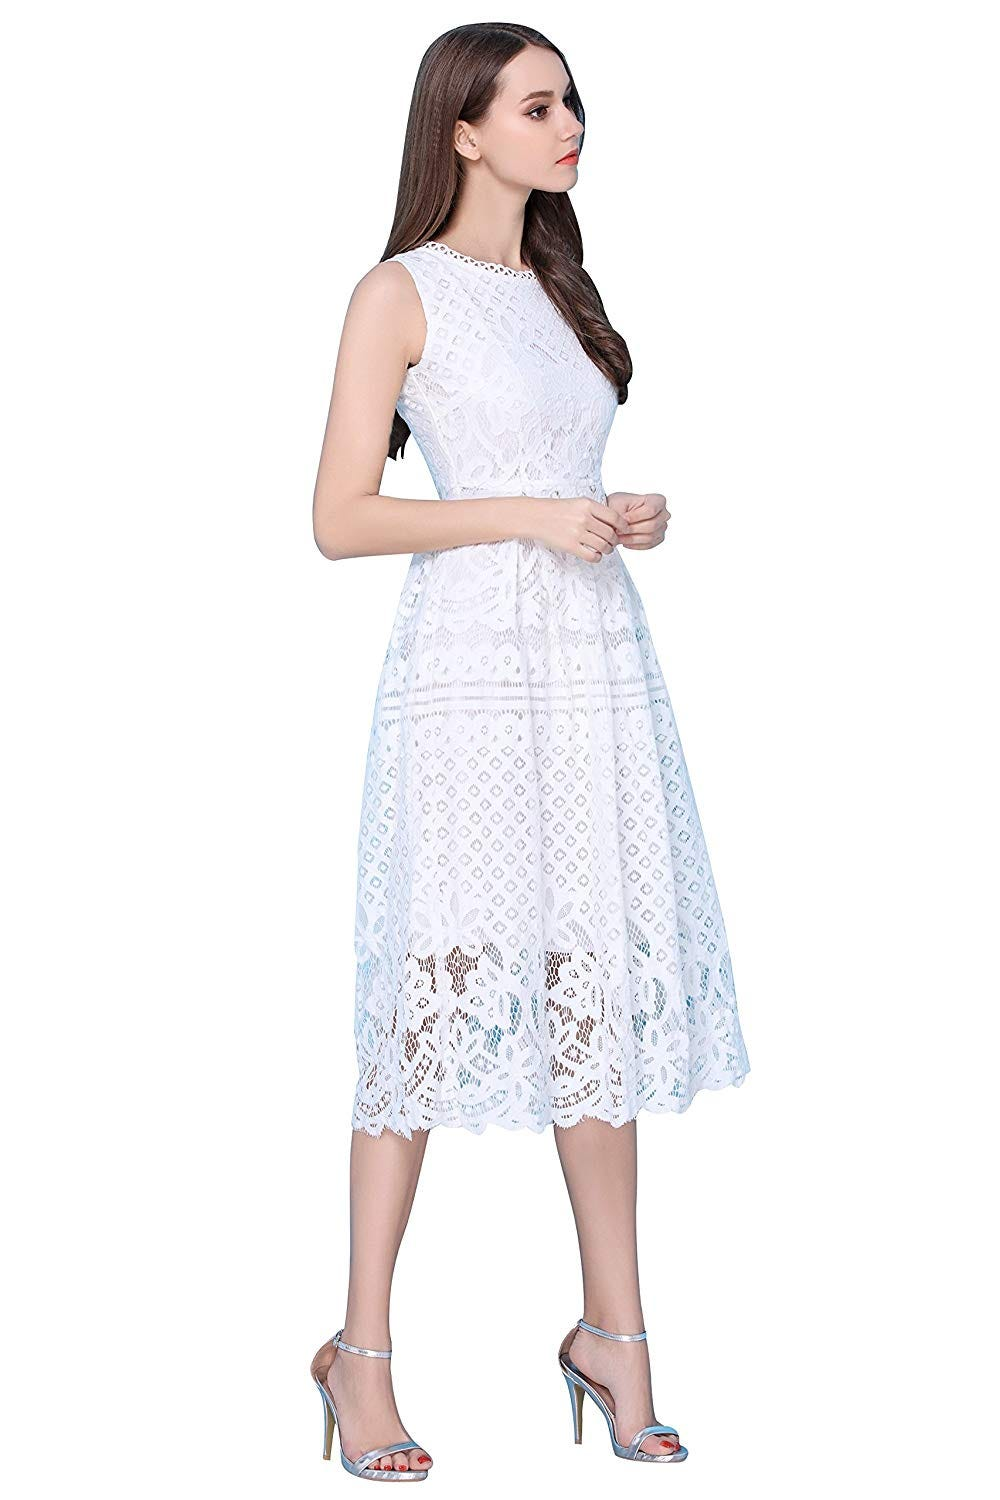 4d770889e20 Fashionable White Dresses For Graduation   Summer 2019